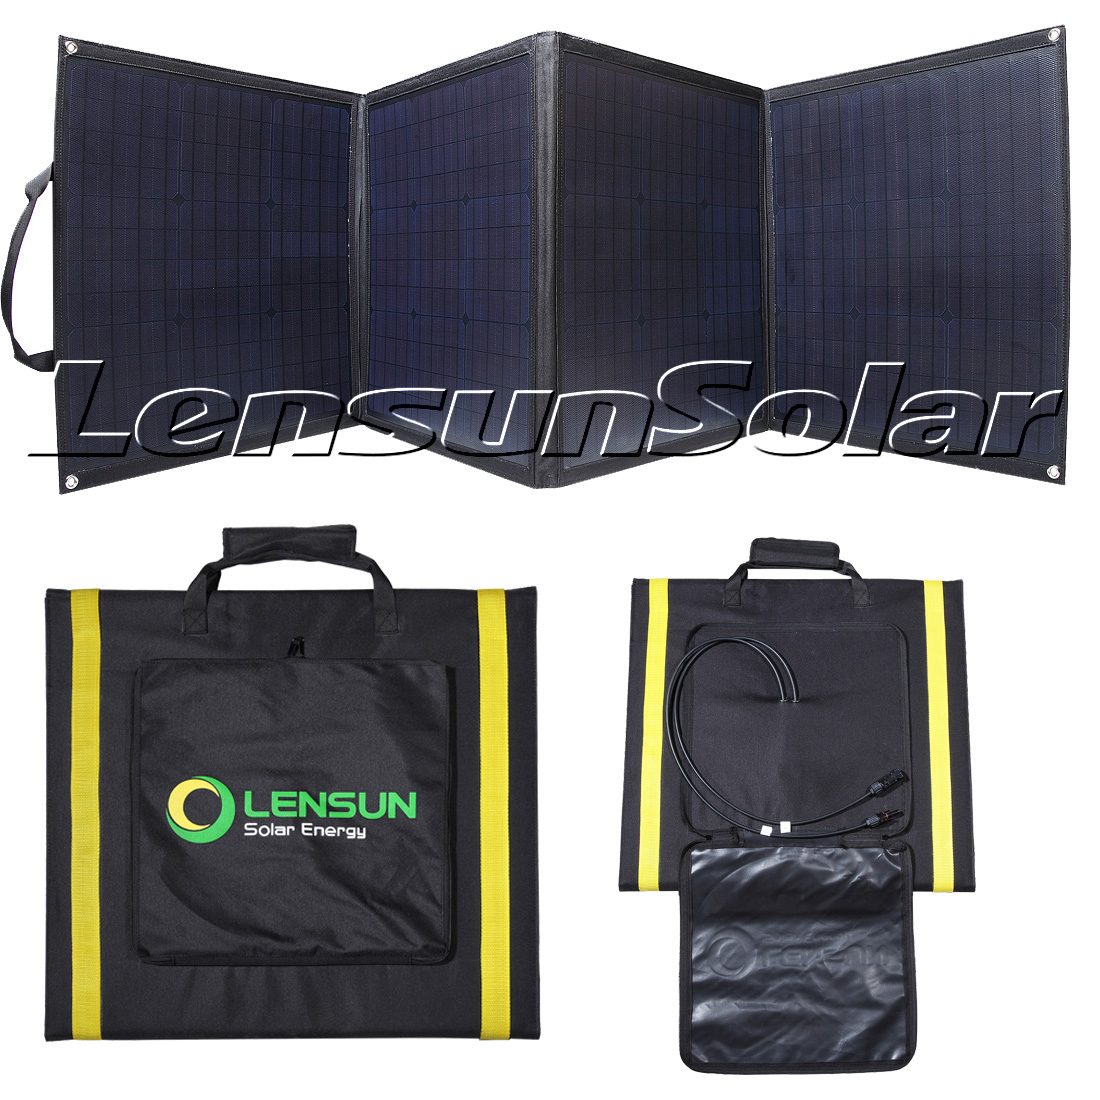 The Review Of Lensun 160w 12v Ultralight Portable Folding